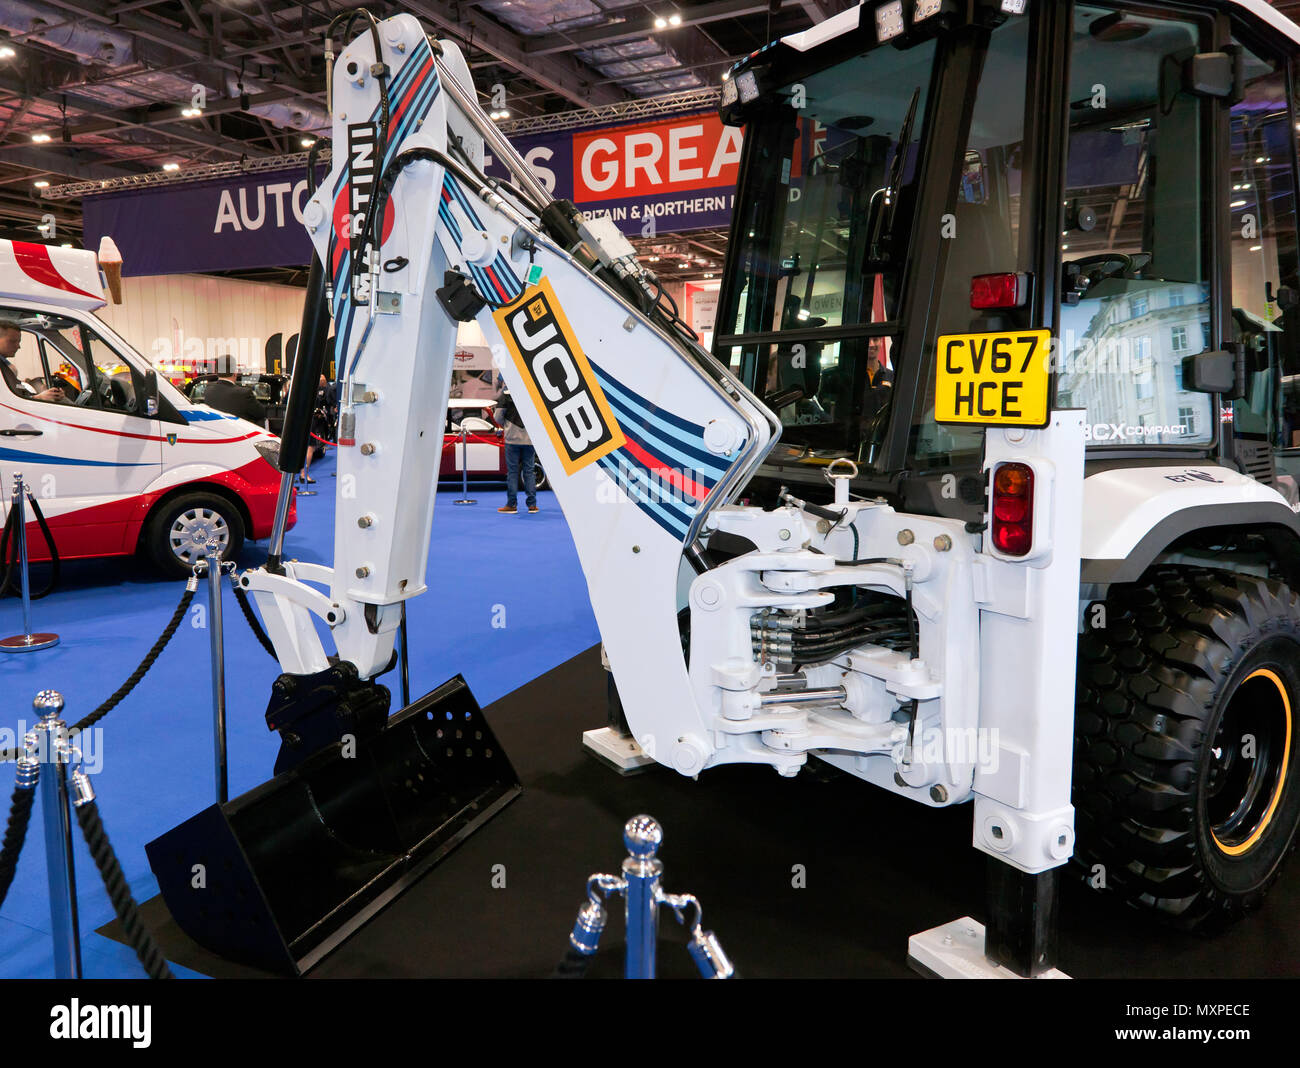 A JCB  Digger, with the 2018 Williams Martini Formula One Team Livery painted on it,  at the 2018 London Motor Show - Stock Image